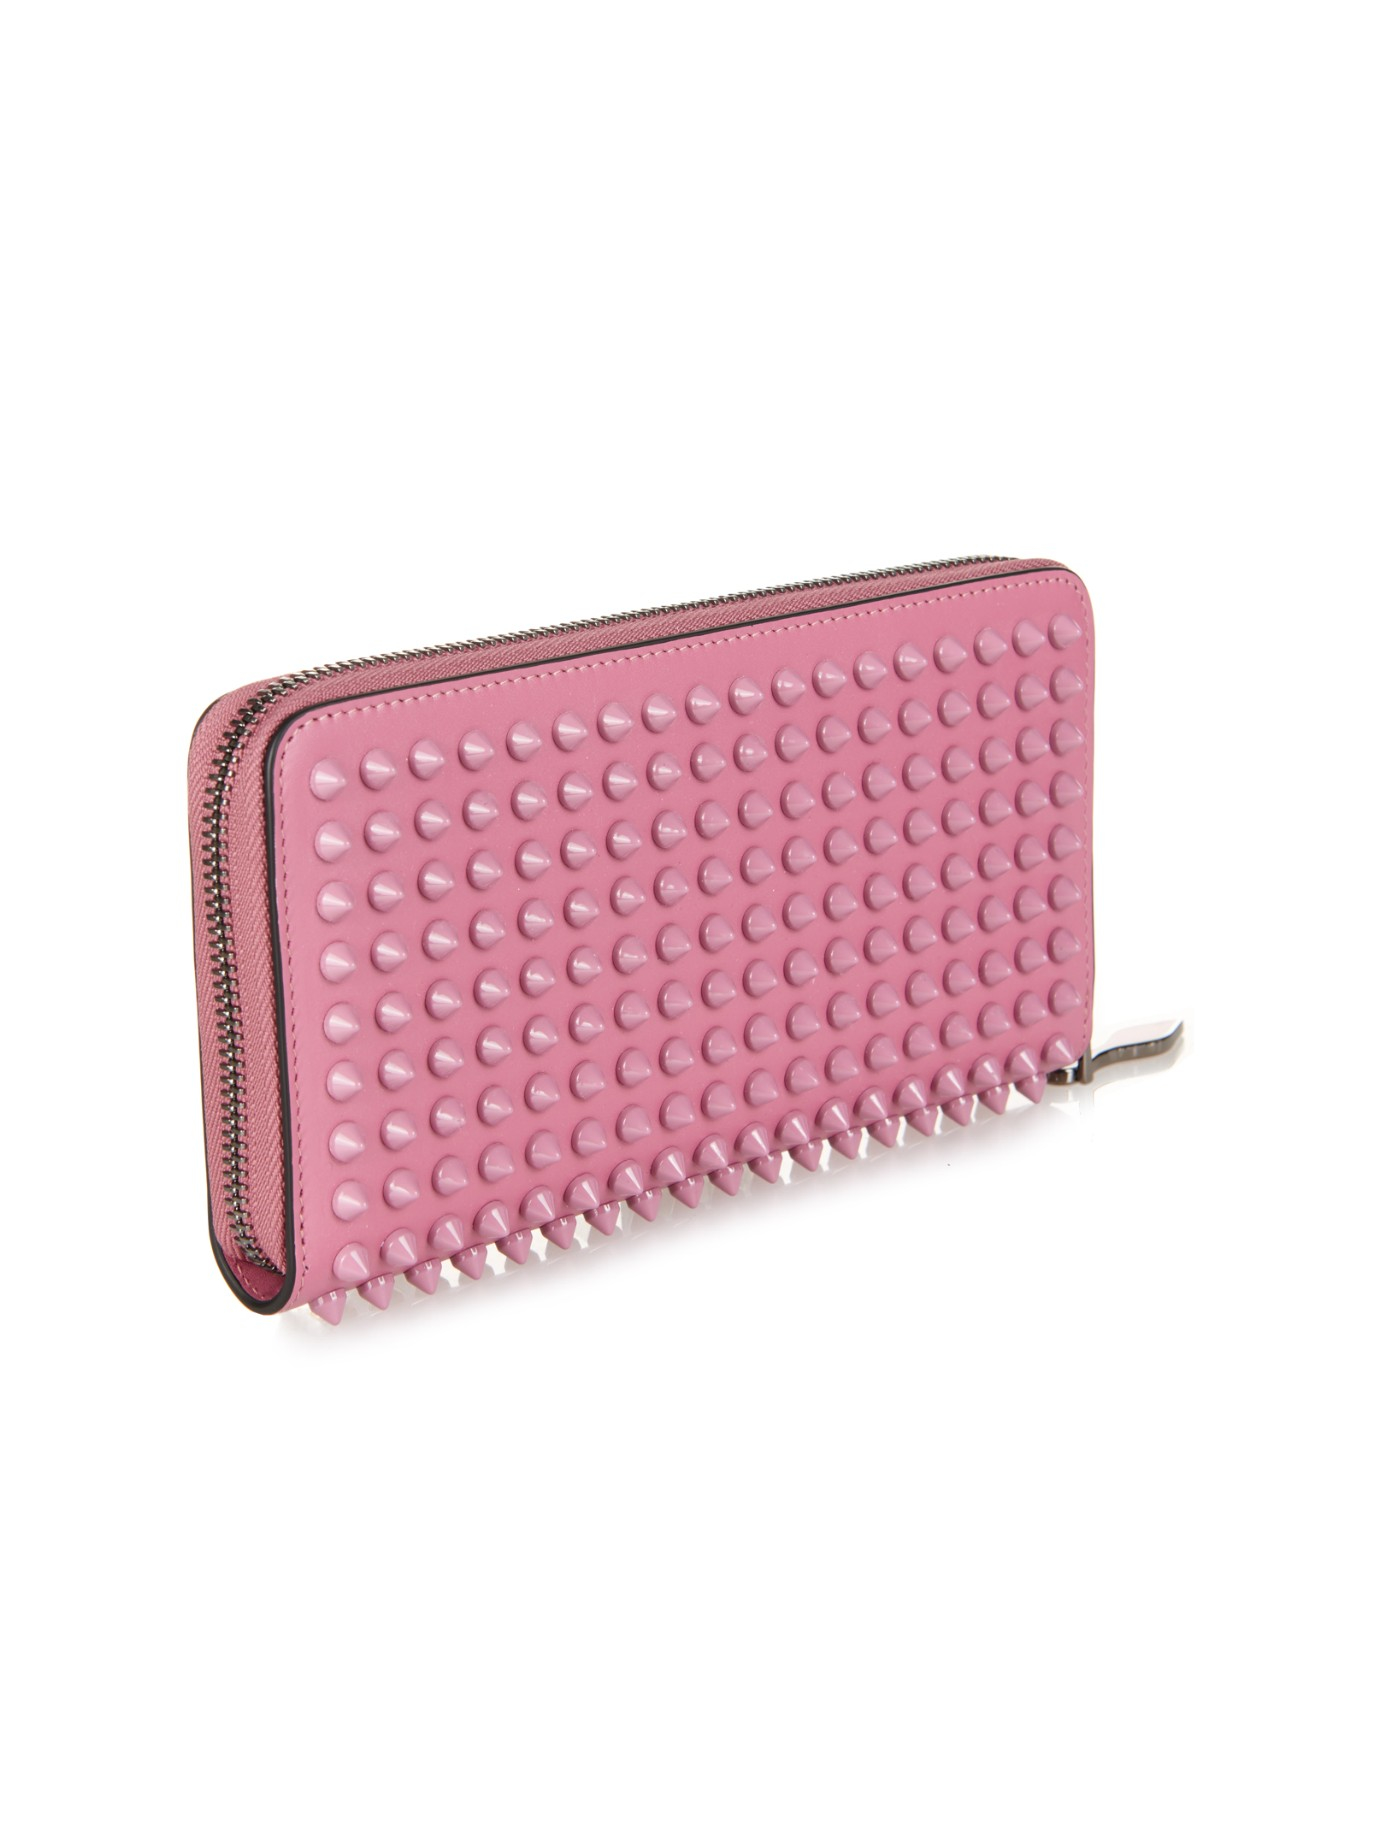 Panettone pink leather spike wallet Christian Louboutin Ls39mX